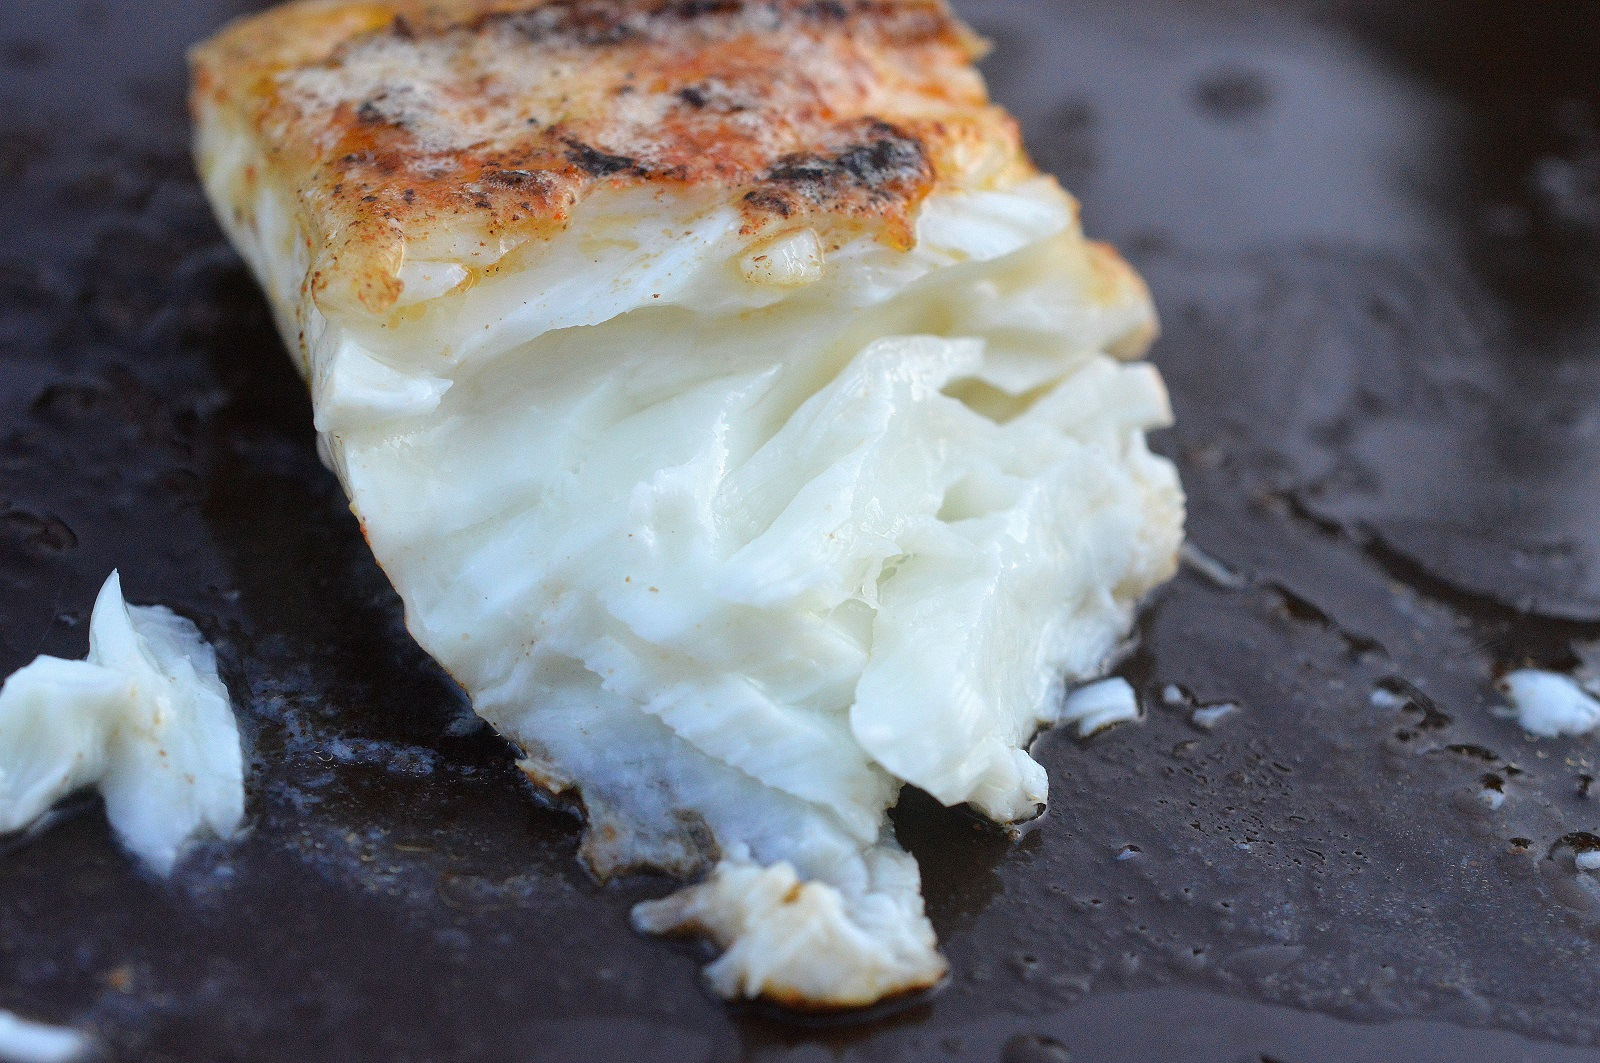 Fresh Halibut delivered to your door from FultonFishMarket.com Look at the color, its unbelievably fresh!